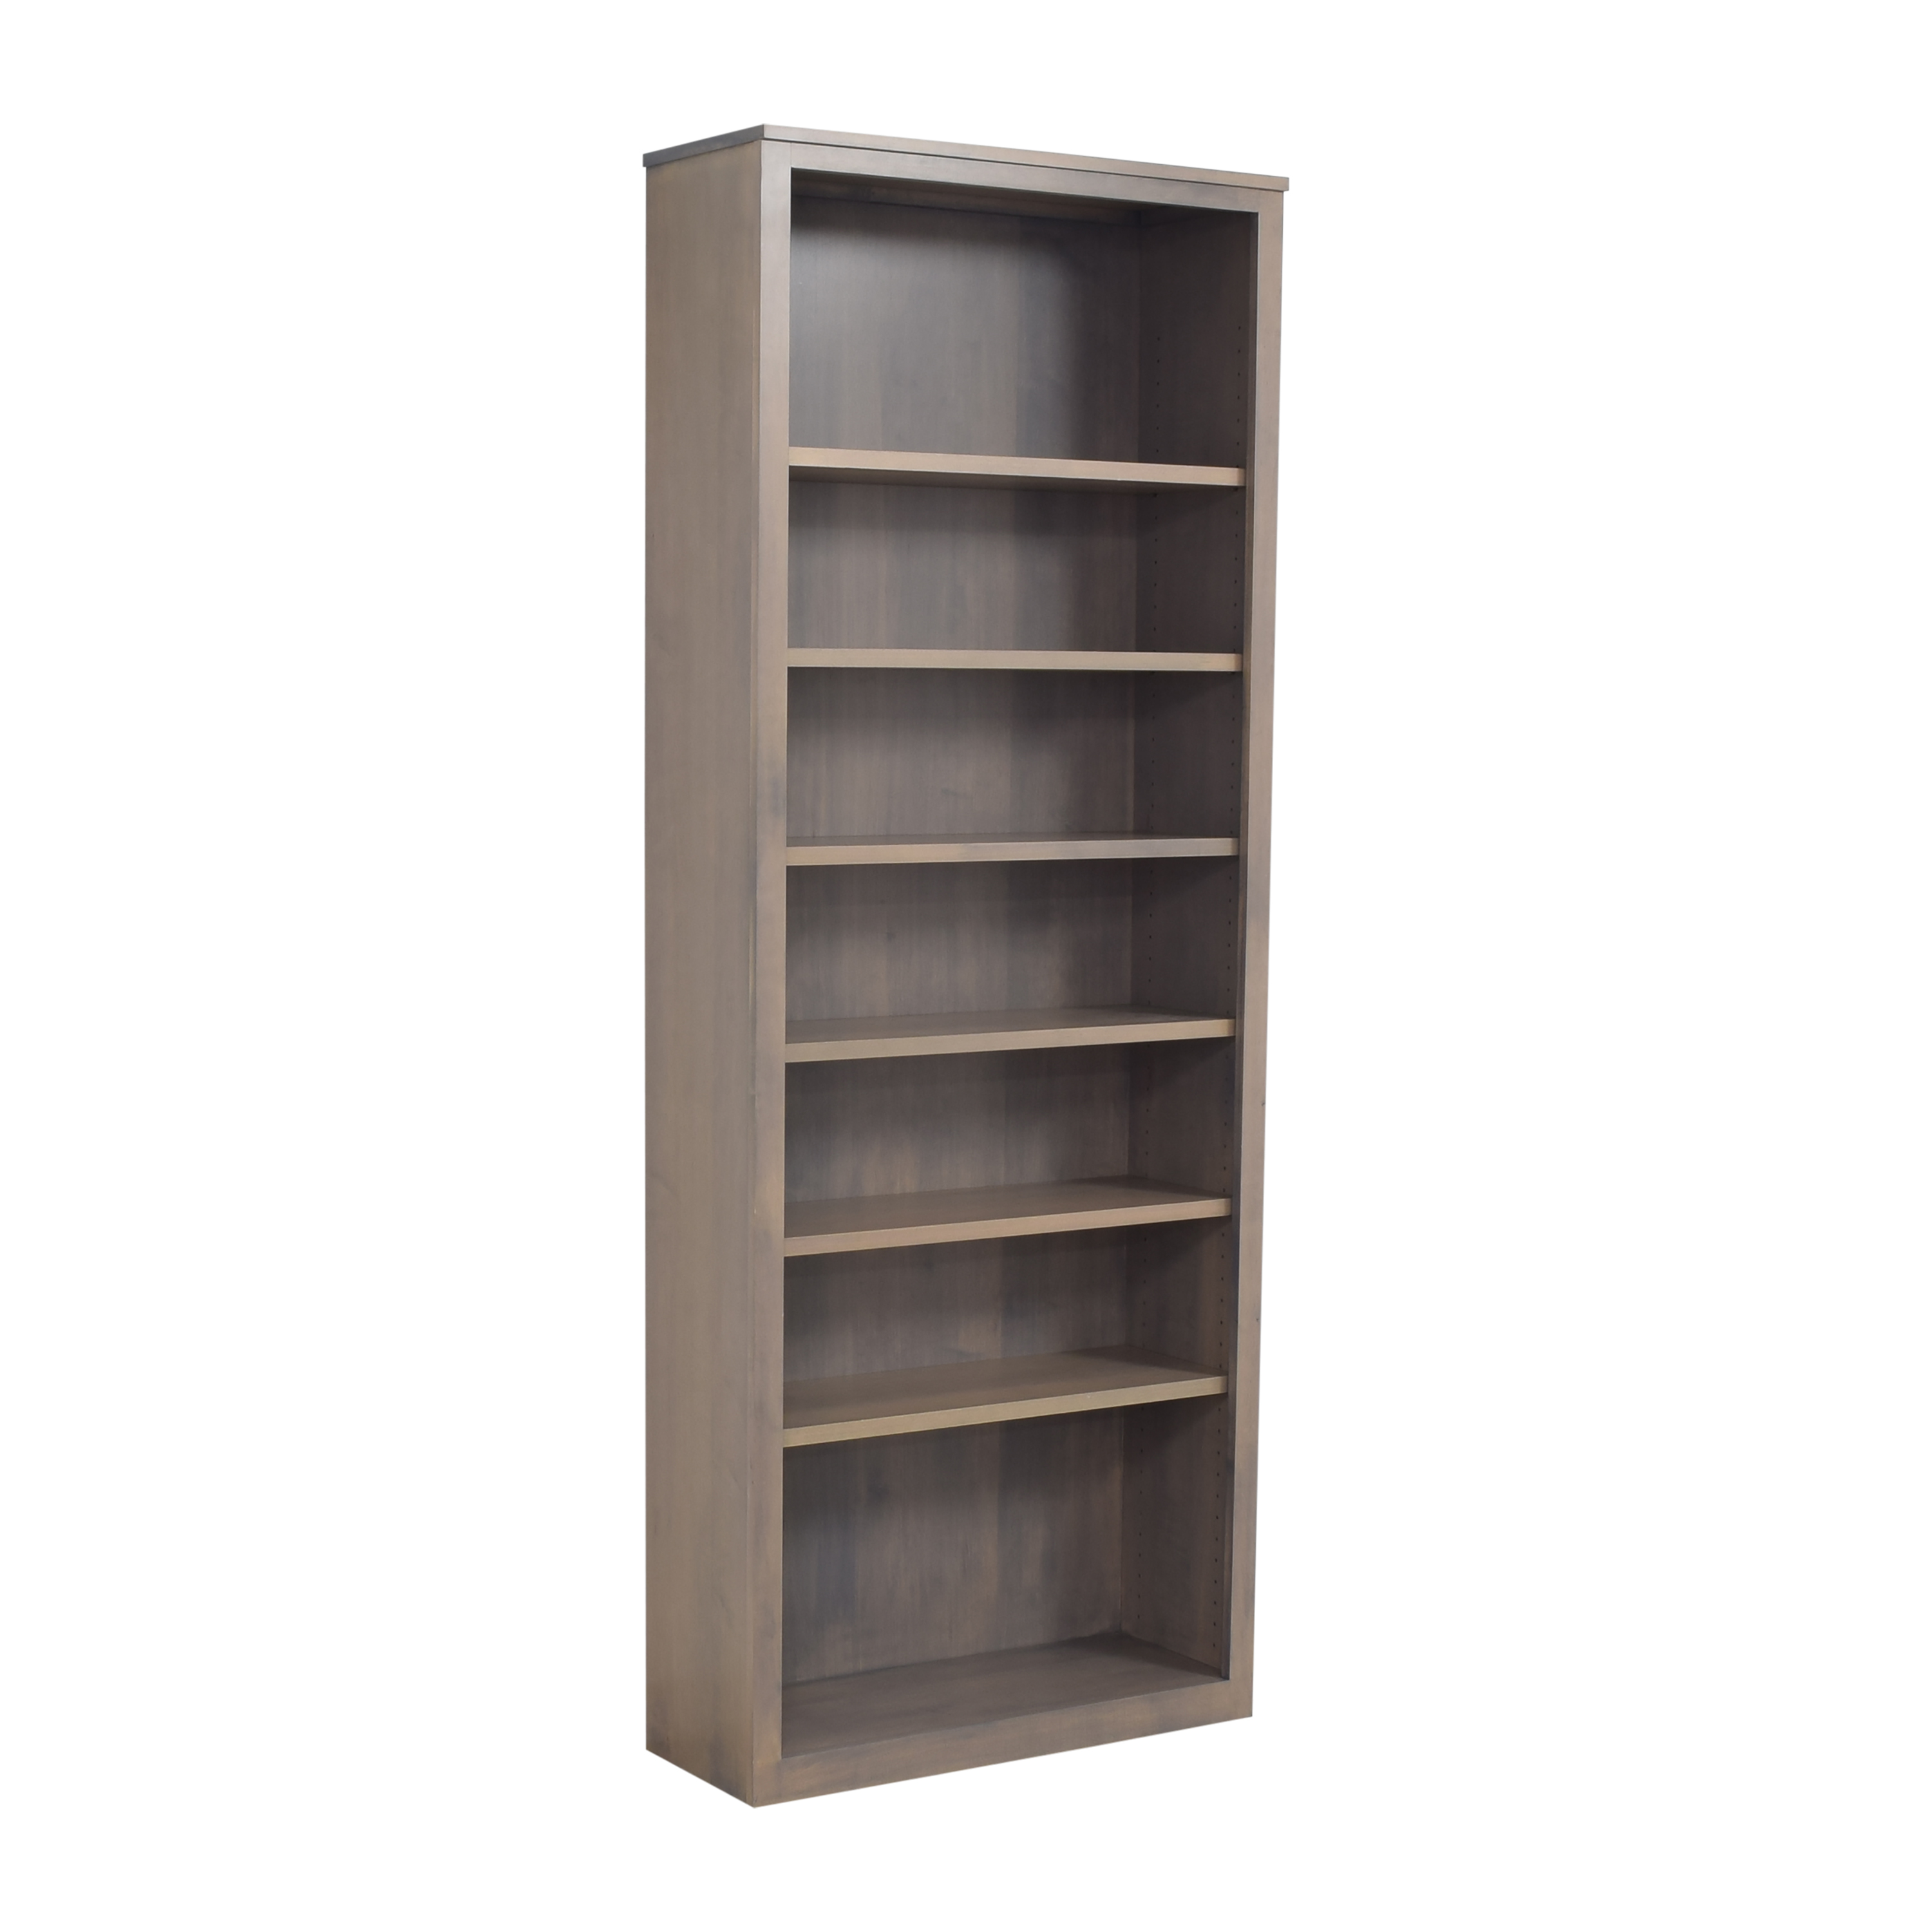 Room & Board Room & Board Woodwind Bookcase Bookcases & Shelving